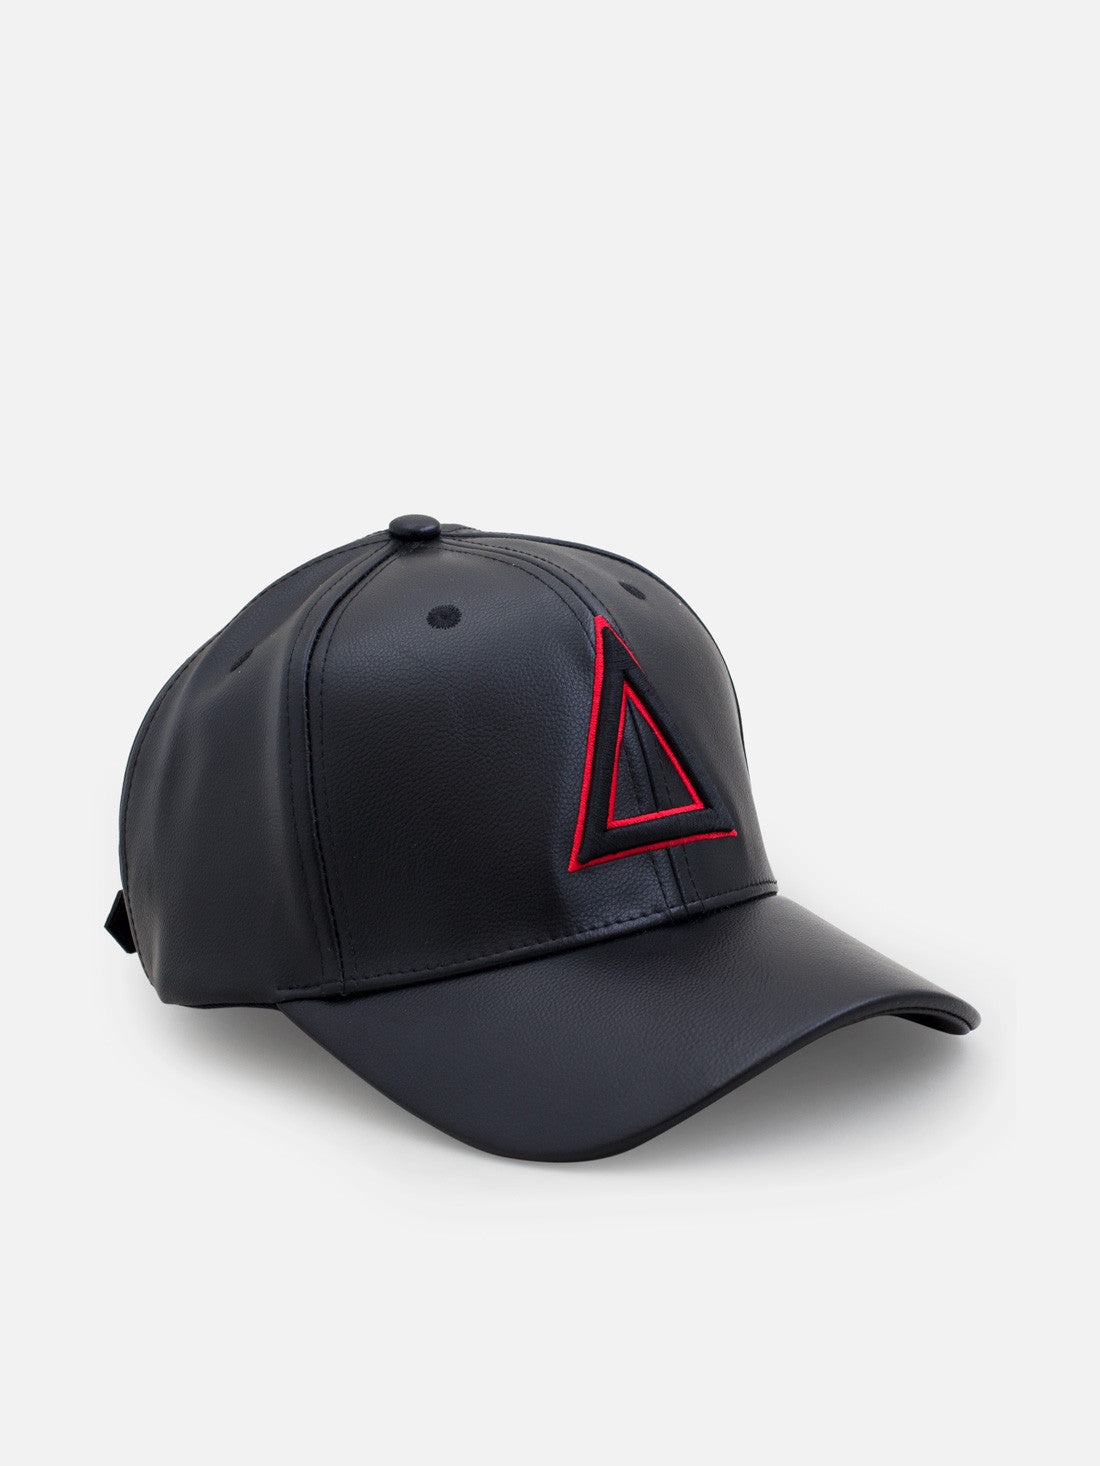 Leather Dad hat Black - red tri